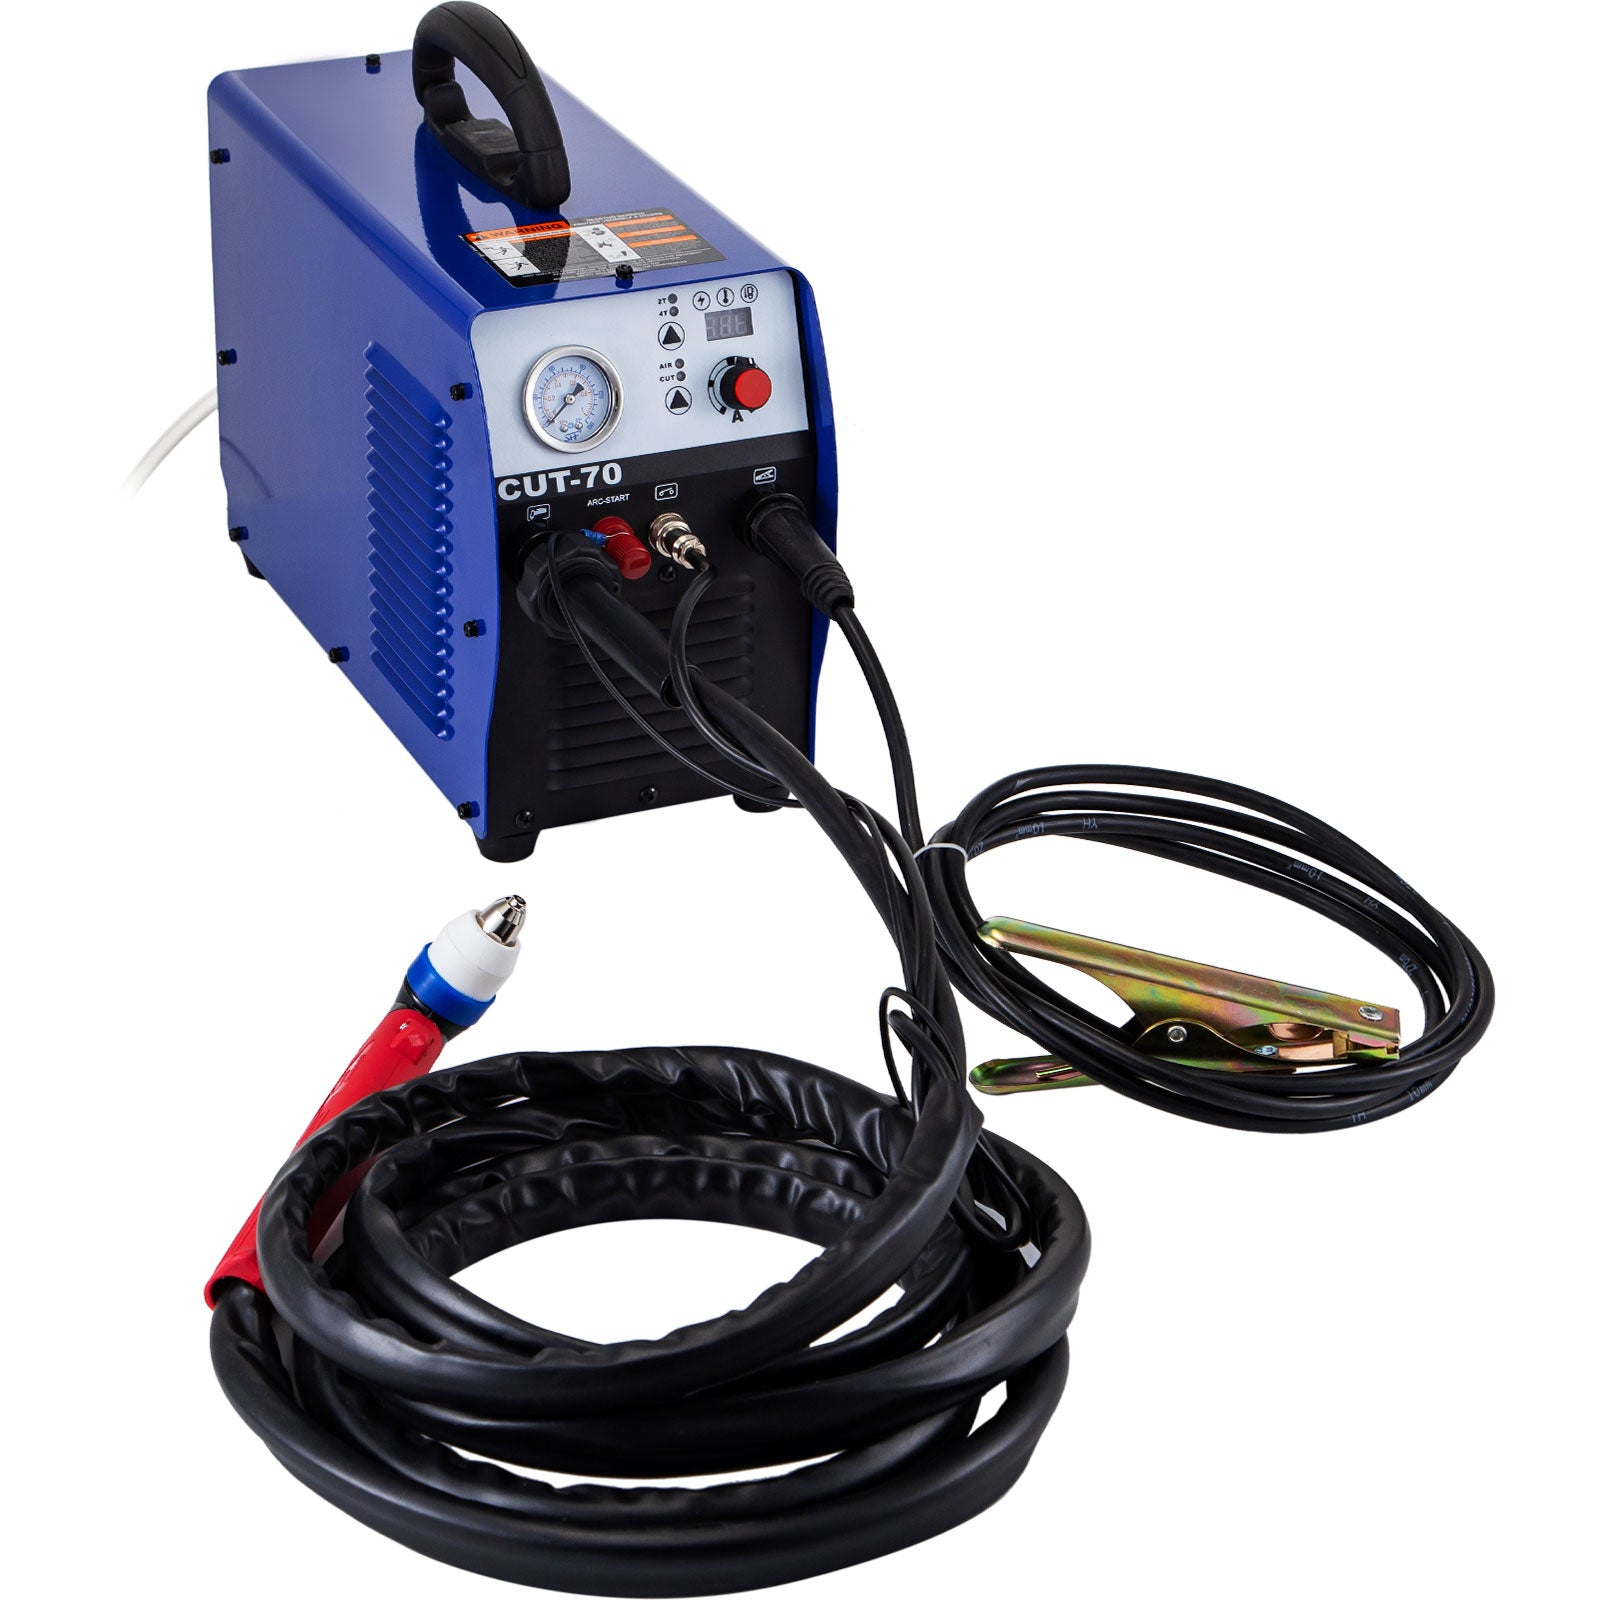 Plasma Cutter Cut-70 70 Amp Non-touch Pilot Arc Air Plasma Cutter Inverter 220v